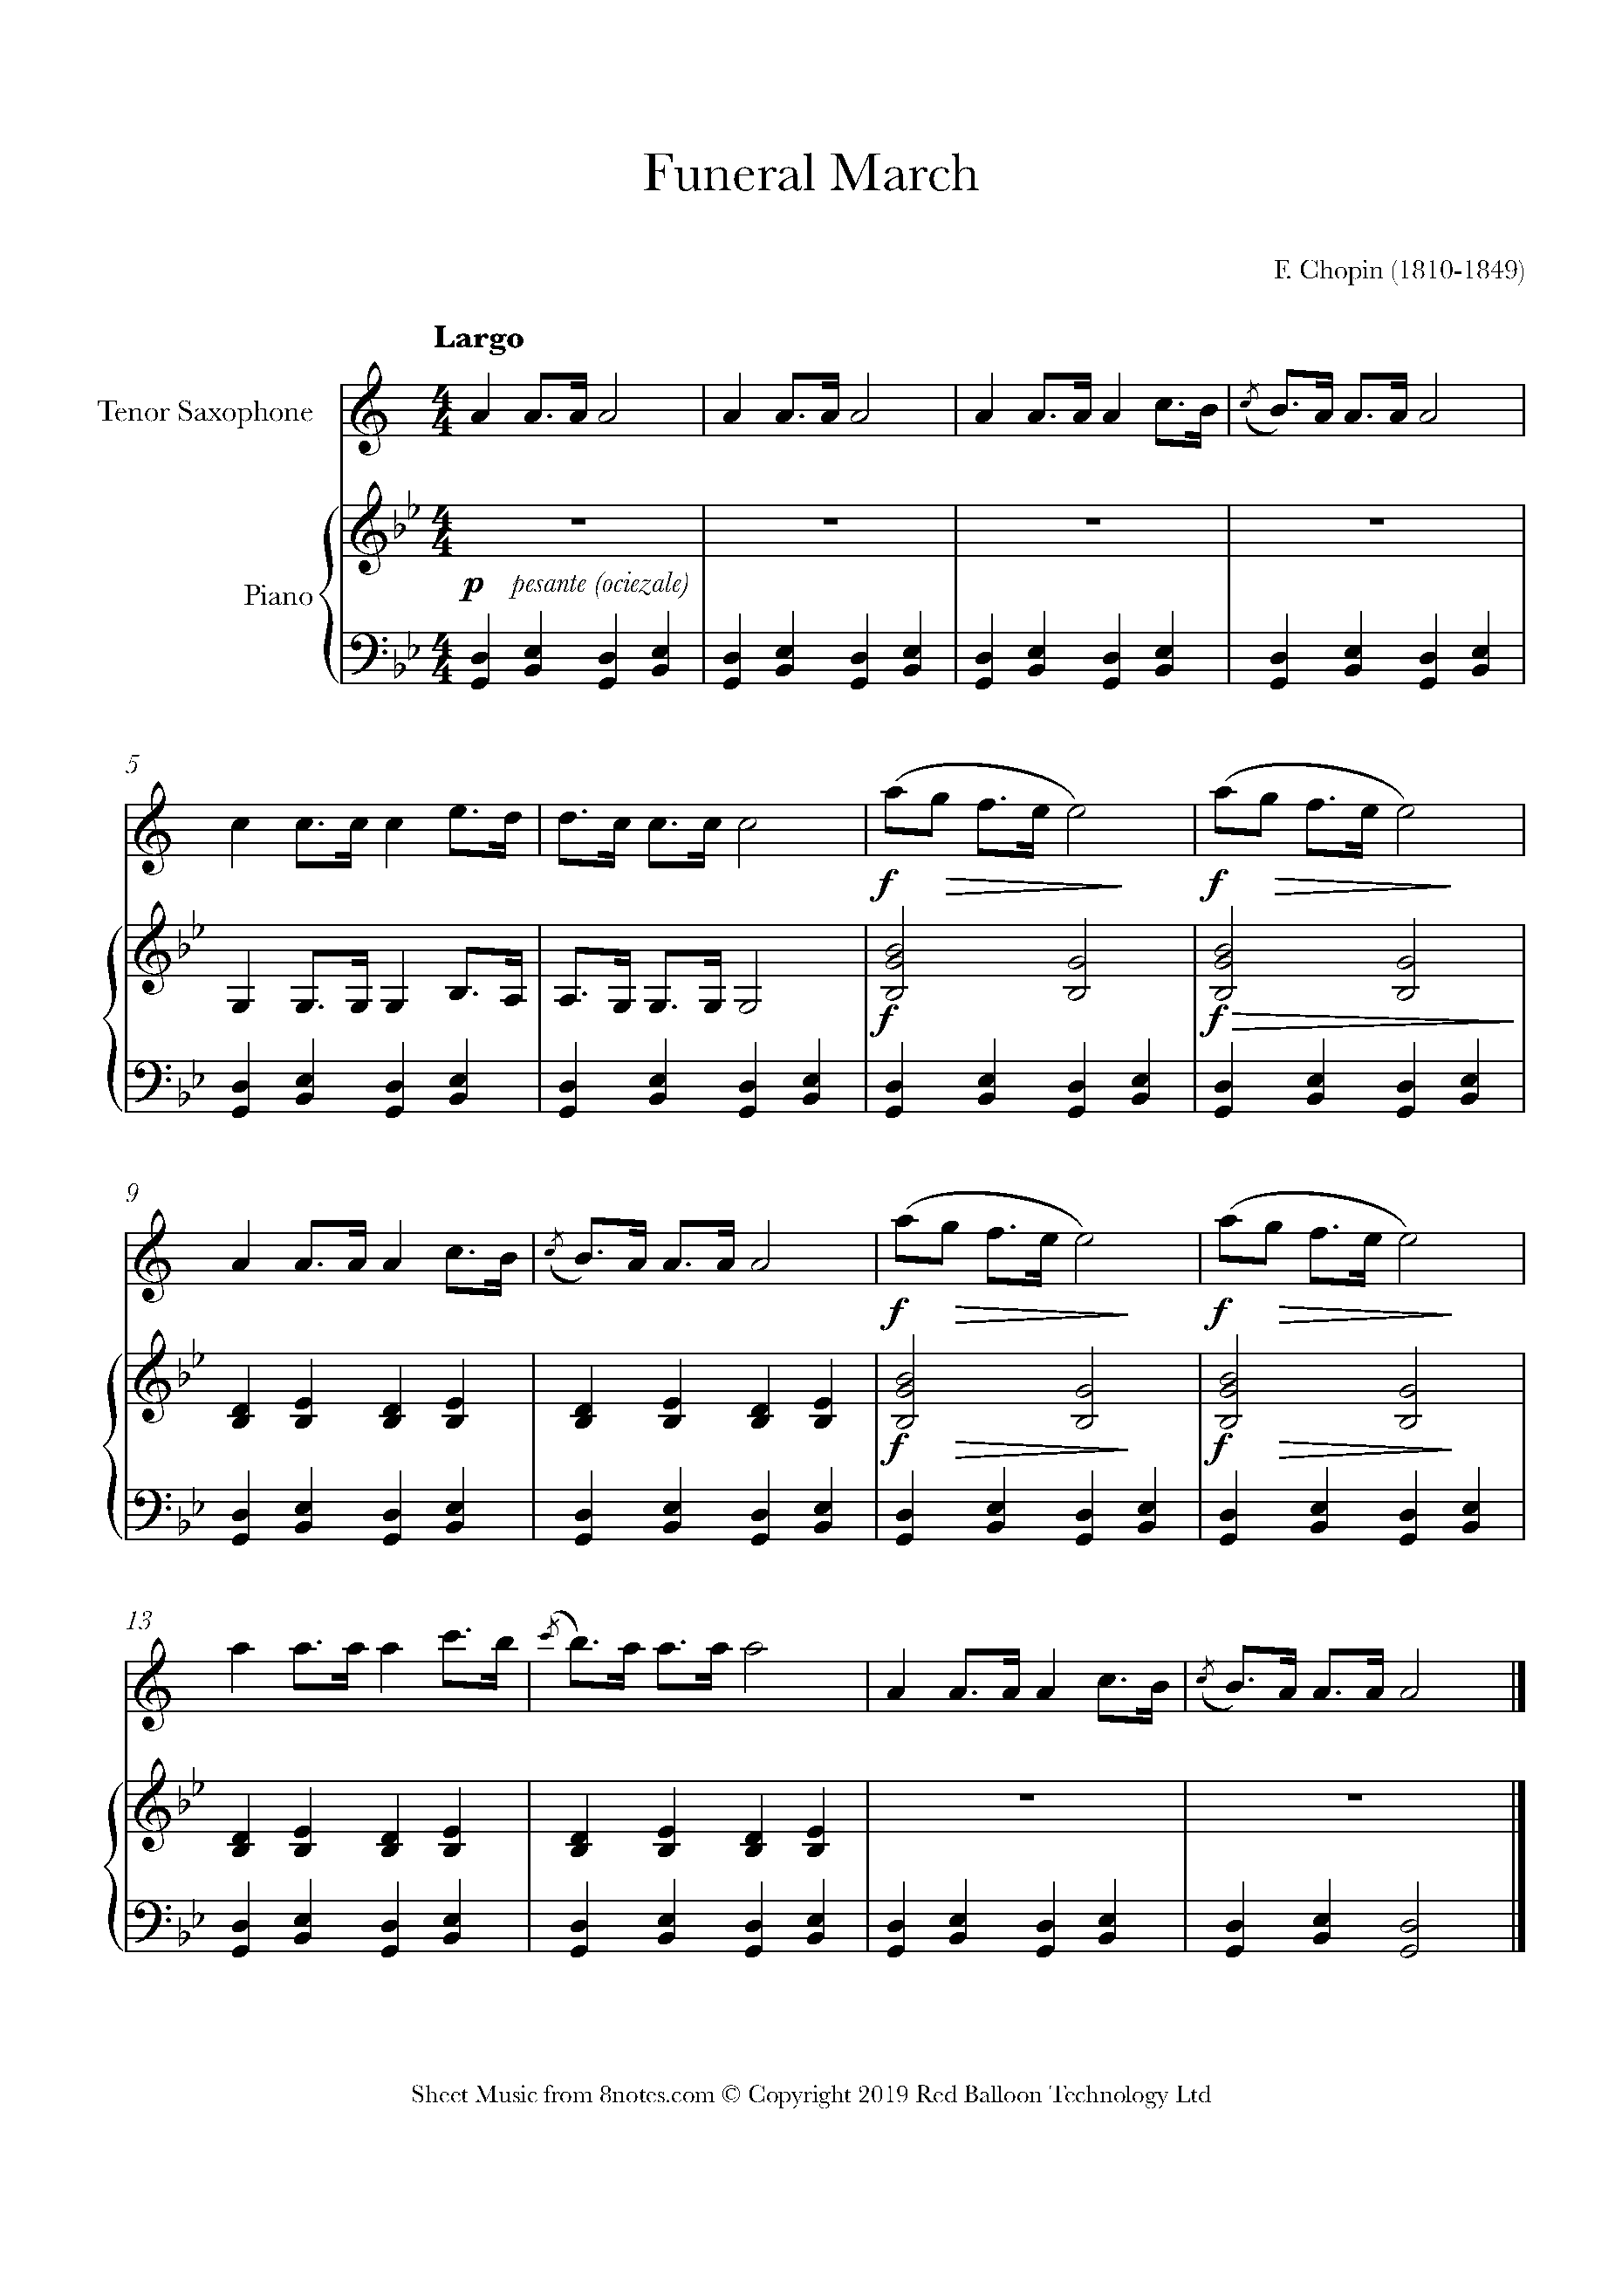 chopin - funeral march sheet music for tenor saxophone - 8notes.com  8notes